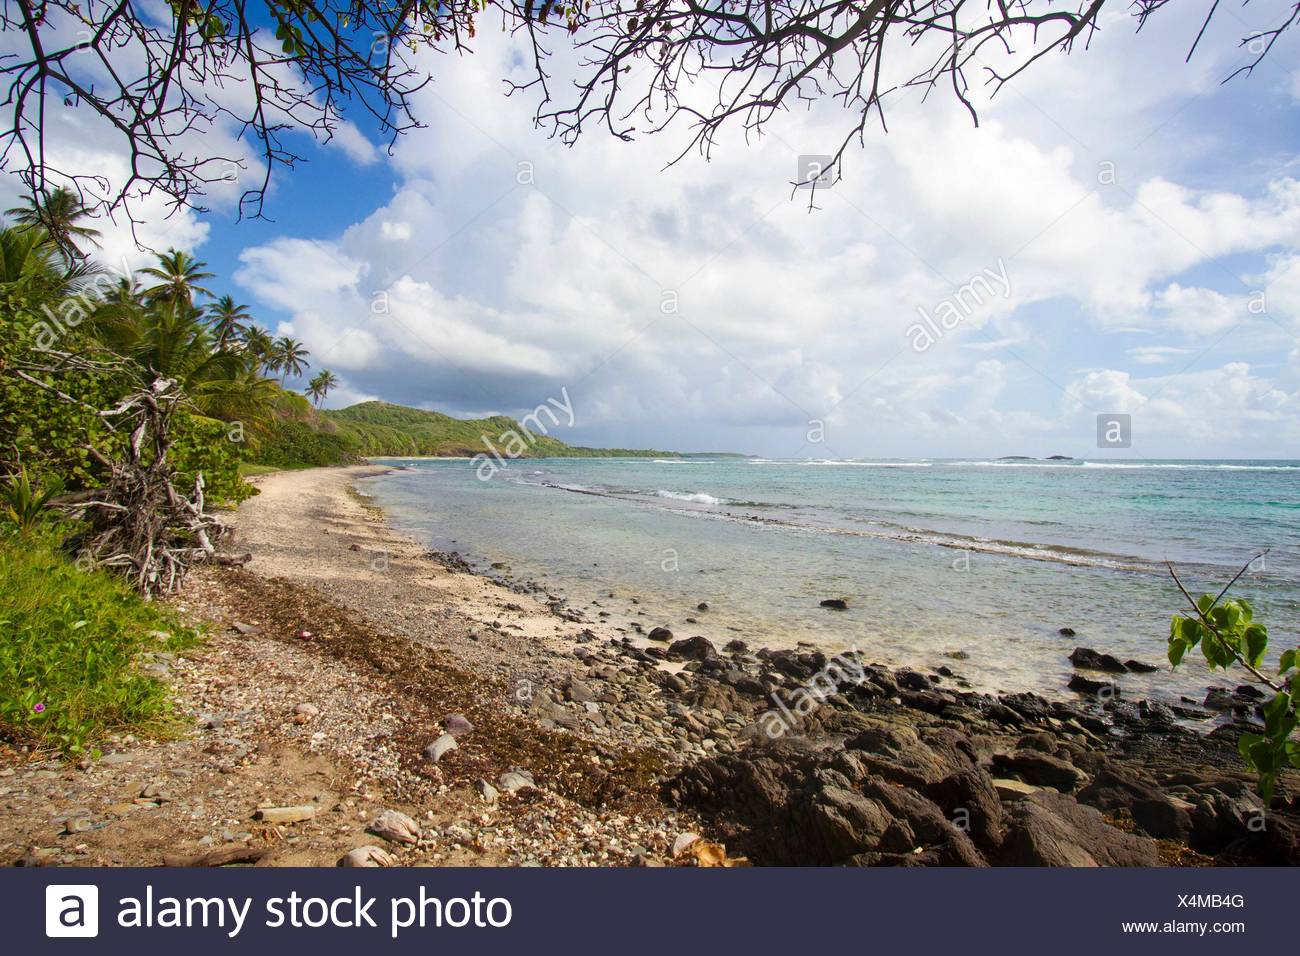 The walk of '' La Trace des Caps'' in Martinique is a 18 kilometres hikes along Cap Ferre, Pointe Macre, and pass by l'Anse Grosse Roche where there - Stock Image